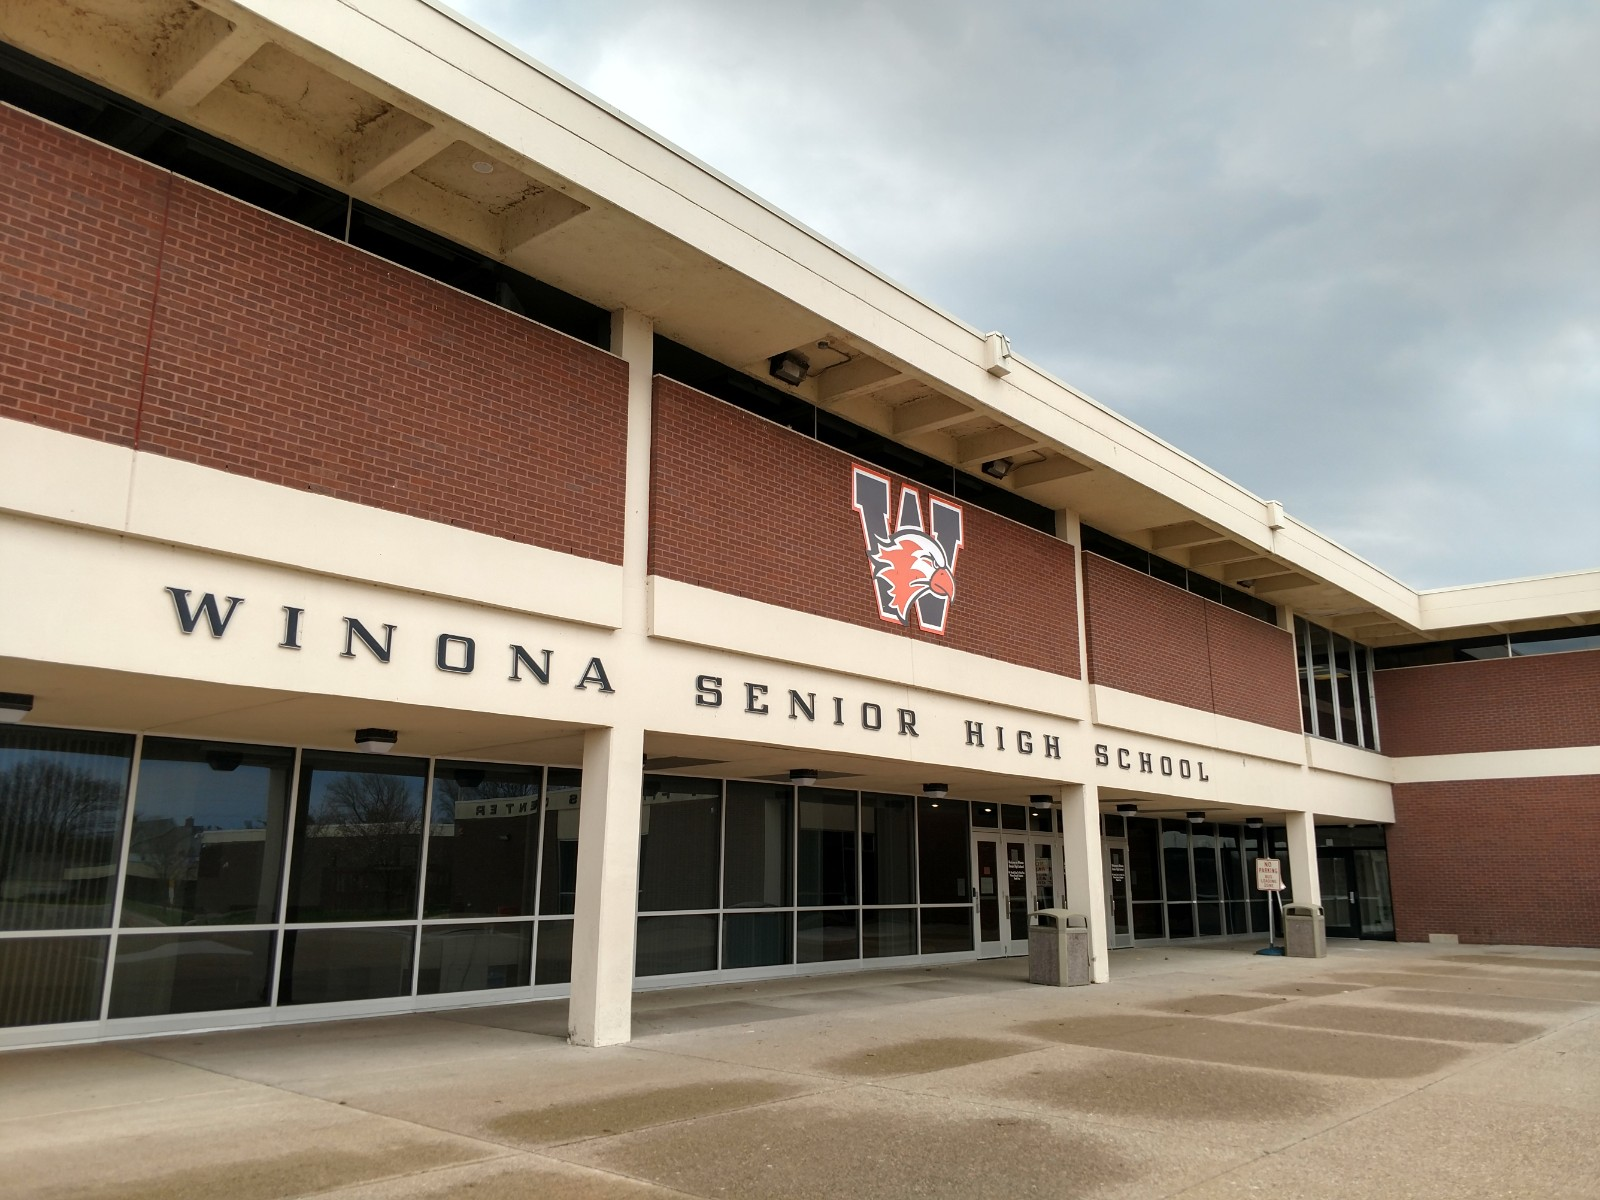 Football, basketball camps among functions leading to COVID-19 outbreak in Winona County